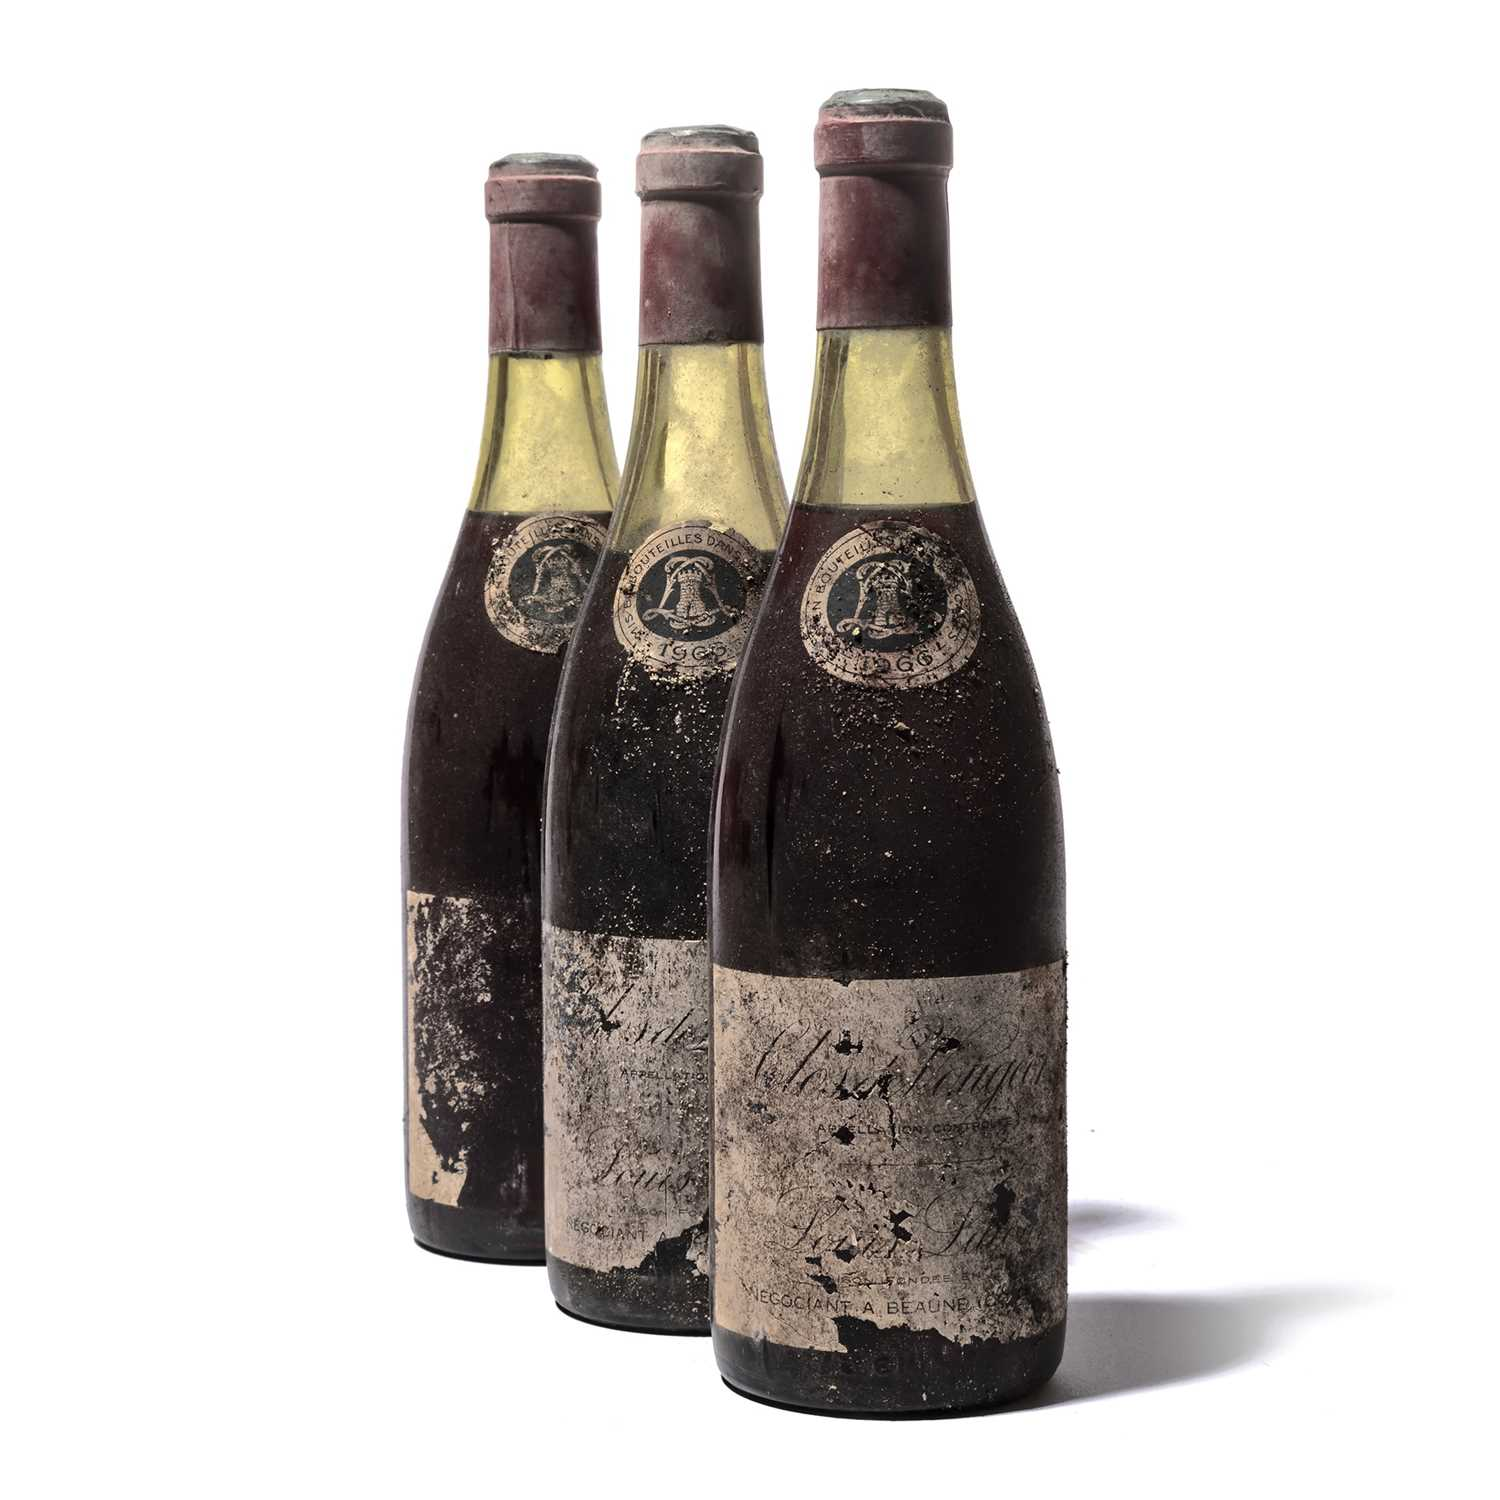 Lot 88 - 7 bottles 1966 Clos Vougeot L Latour